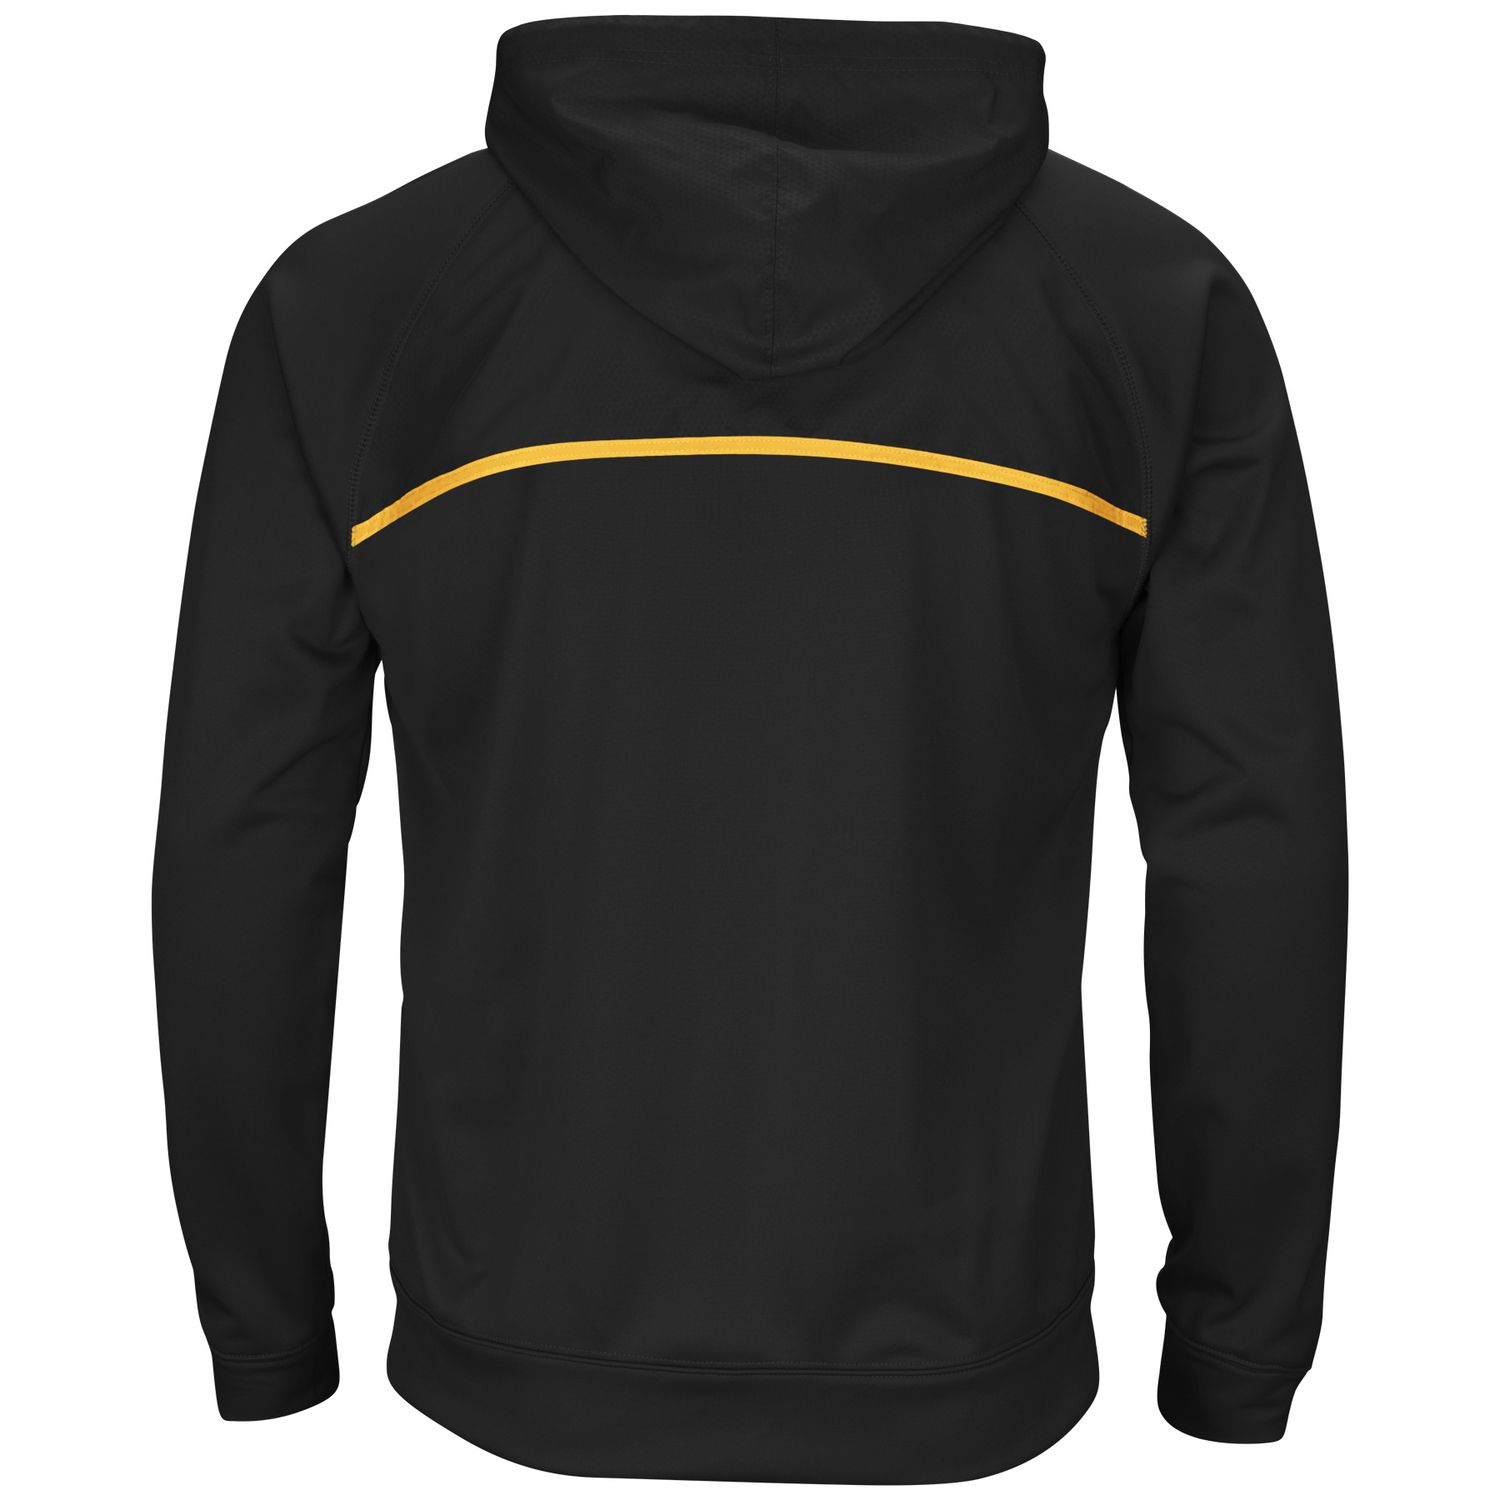 NFL Pittsburgh Steelers Sports Fan Clothing